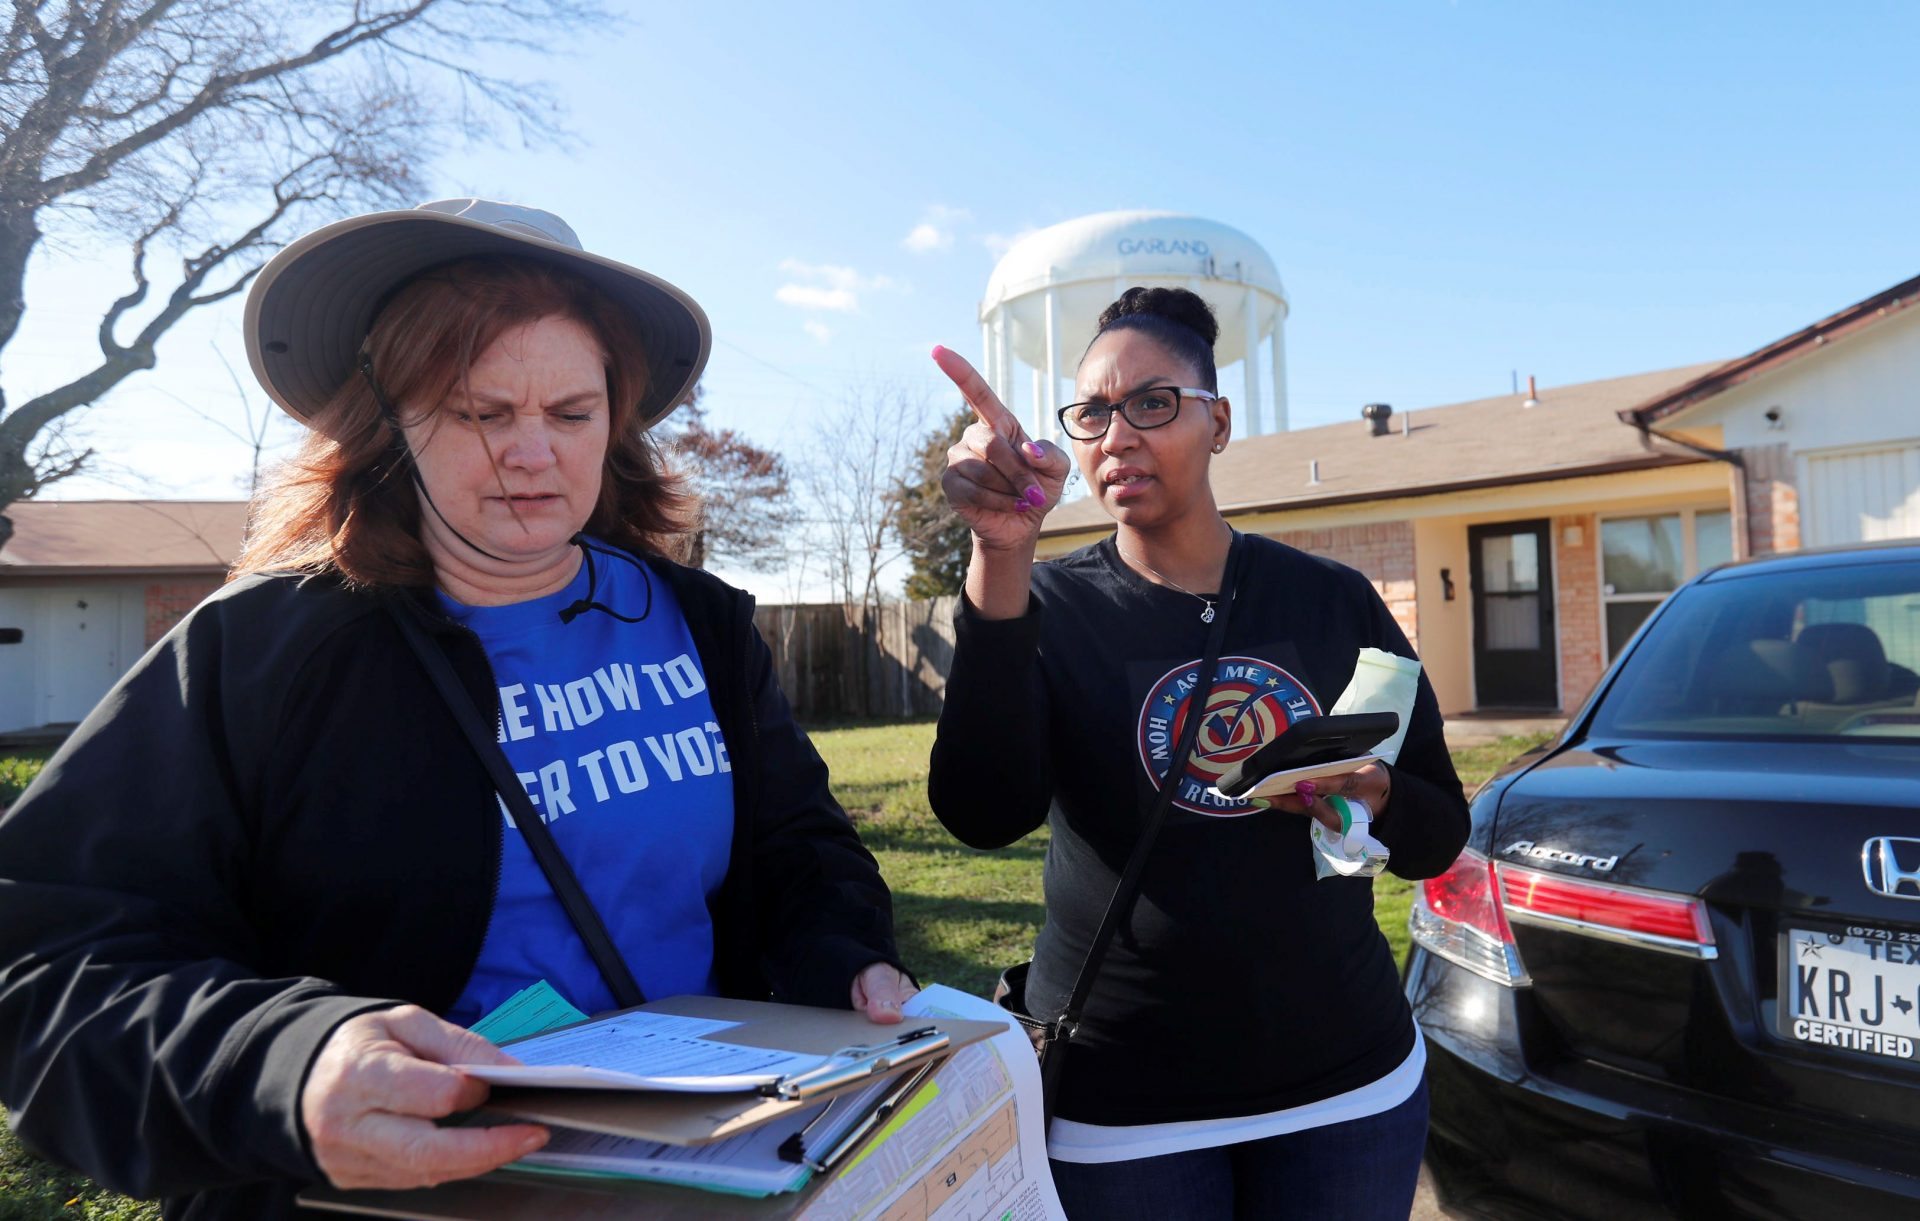 Democratic Party Precinct Chairs Angela Orr Heath, right, and Myla Senn prepare to walk a neighborhood during for a voter registration drive in Garland, Texas, Saturday, Jan. 18, 2020. Democrats are hoping this is the year they can finally make political headway in Texas and have set their sights on trying to win a majority in one house of the state Legislature. Among the hurdles they'll have to overcome are a series of voting restrictions Texas Republicans have implemented in recent years, including the nation's toughest voter ID law, purging of voter rolls and reductions in polling places.